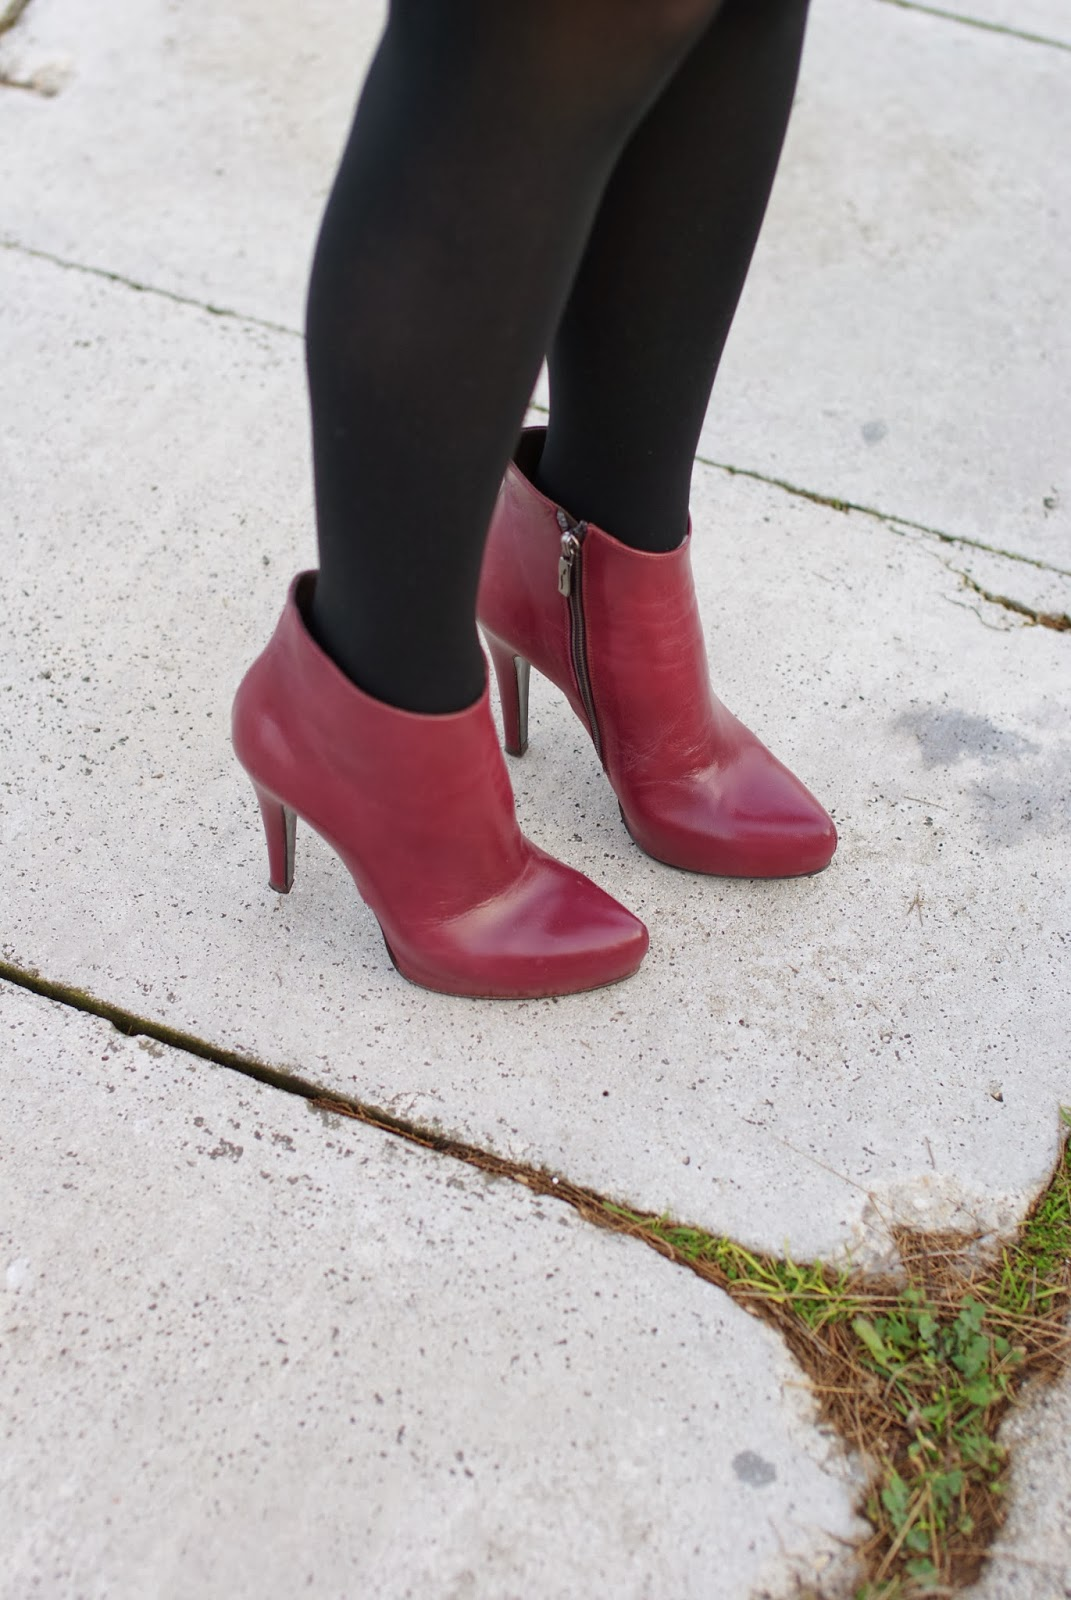 Icone burgundy boots, stivaletti bordeaux, Fashion and Cookies, fashion blogger